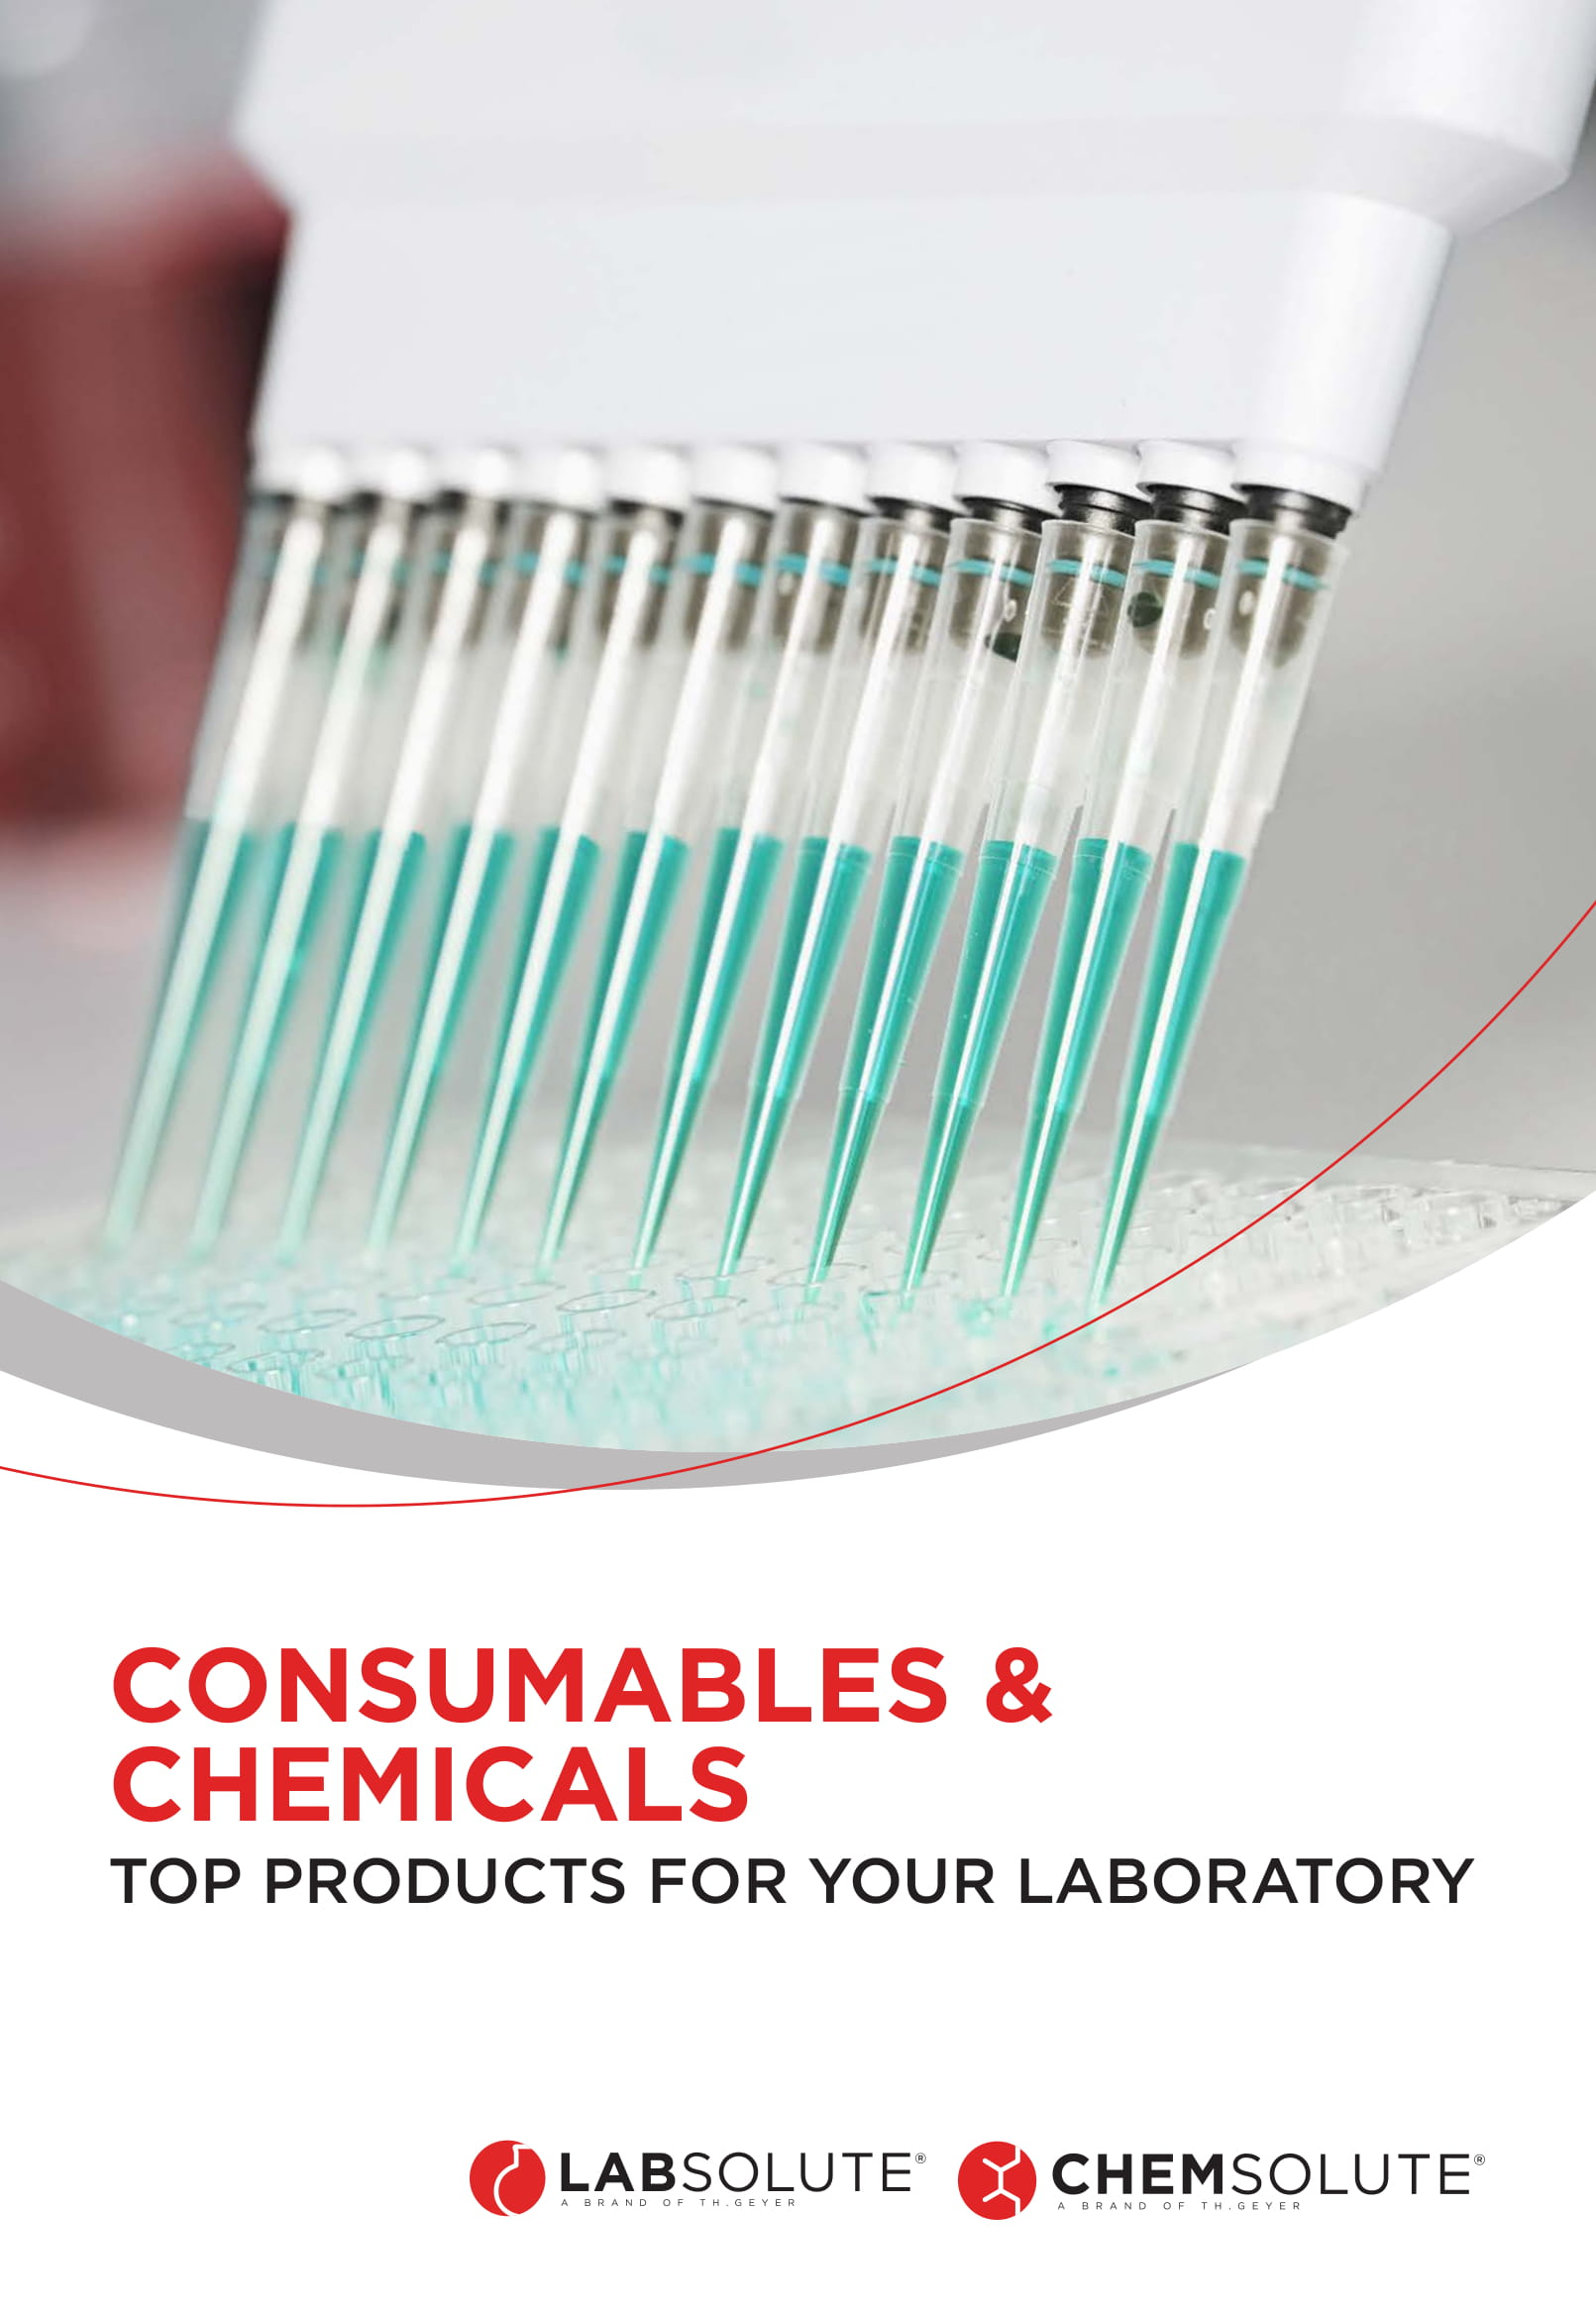 top laboratory products consumables and chemicals example 001